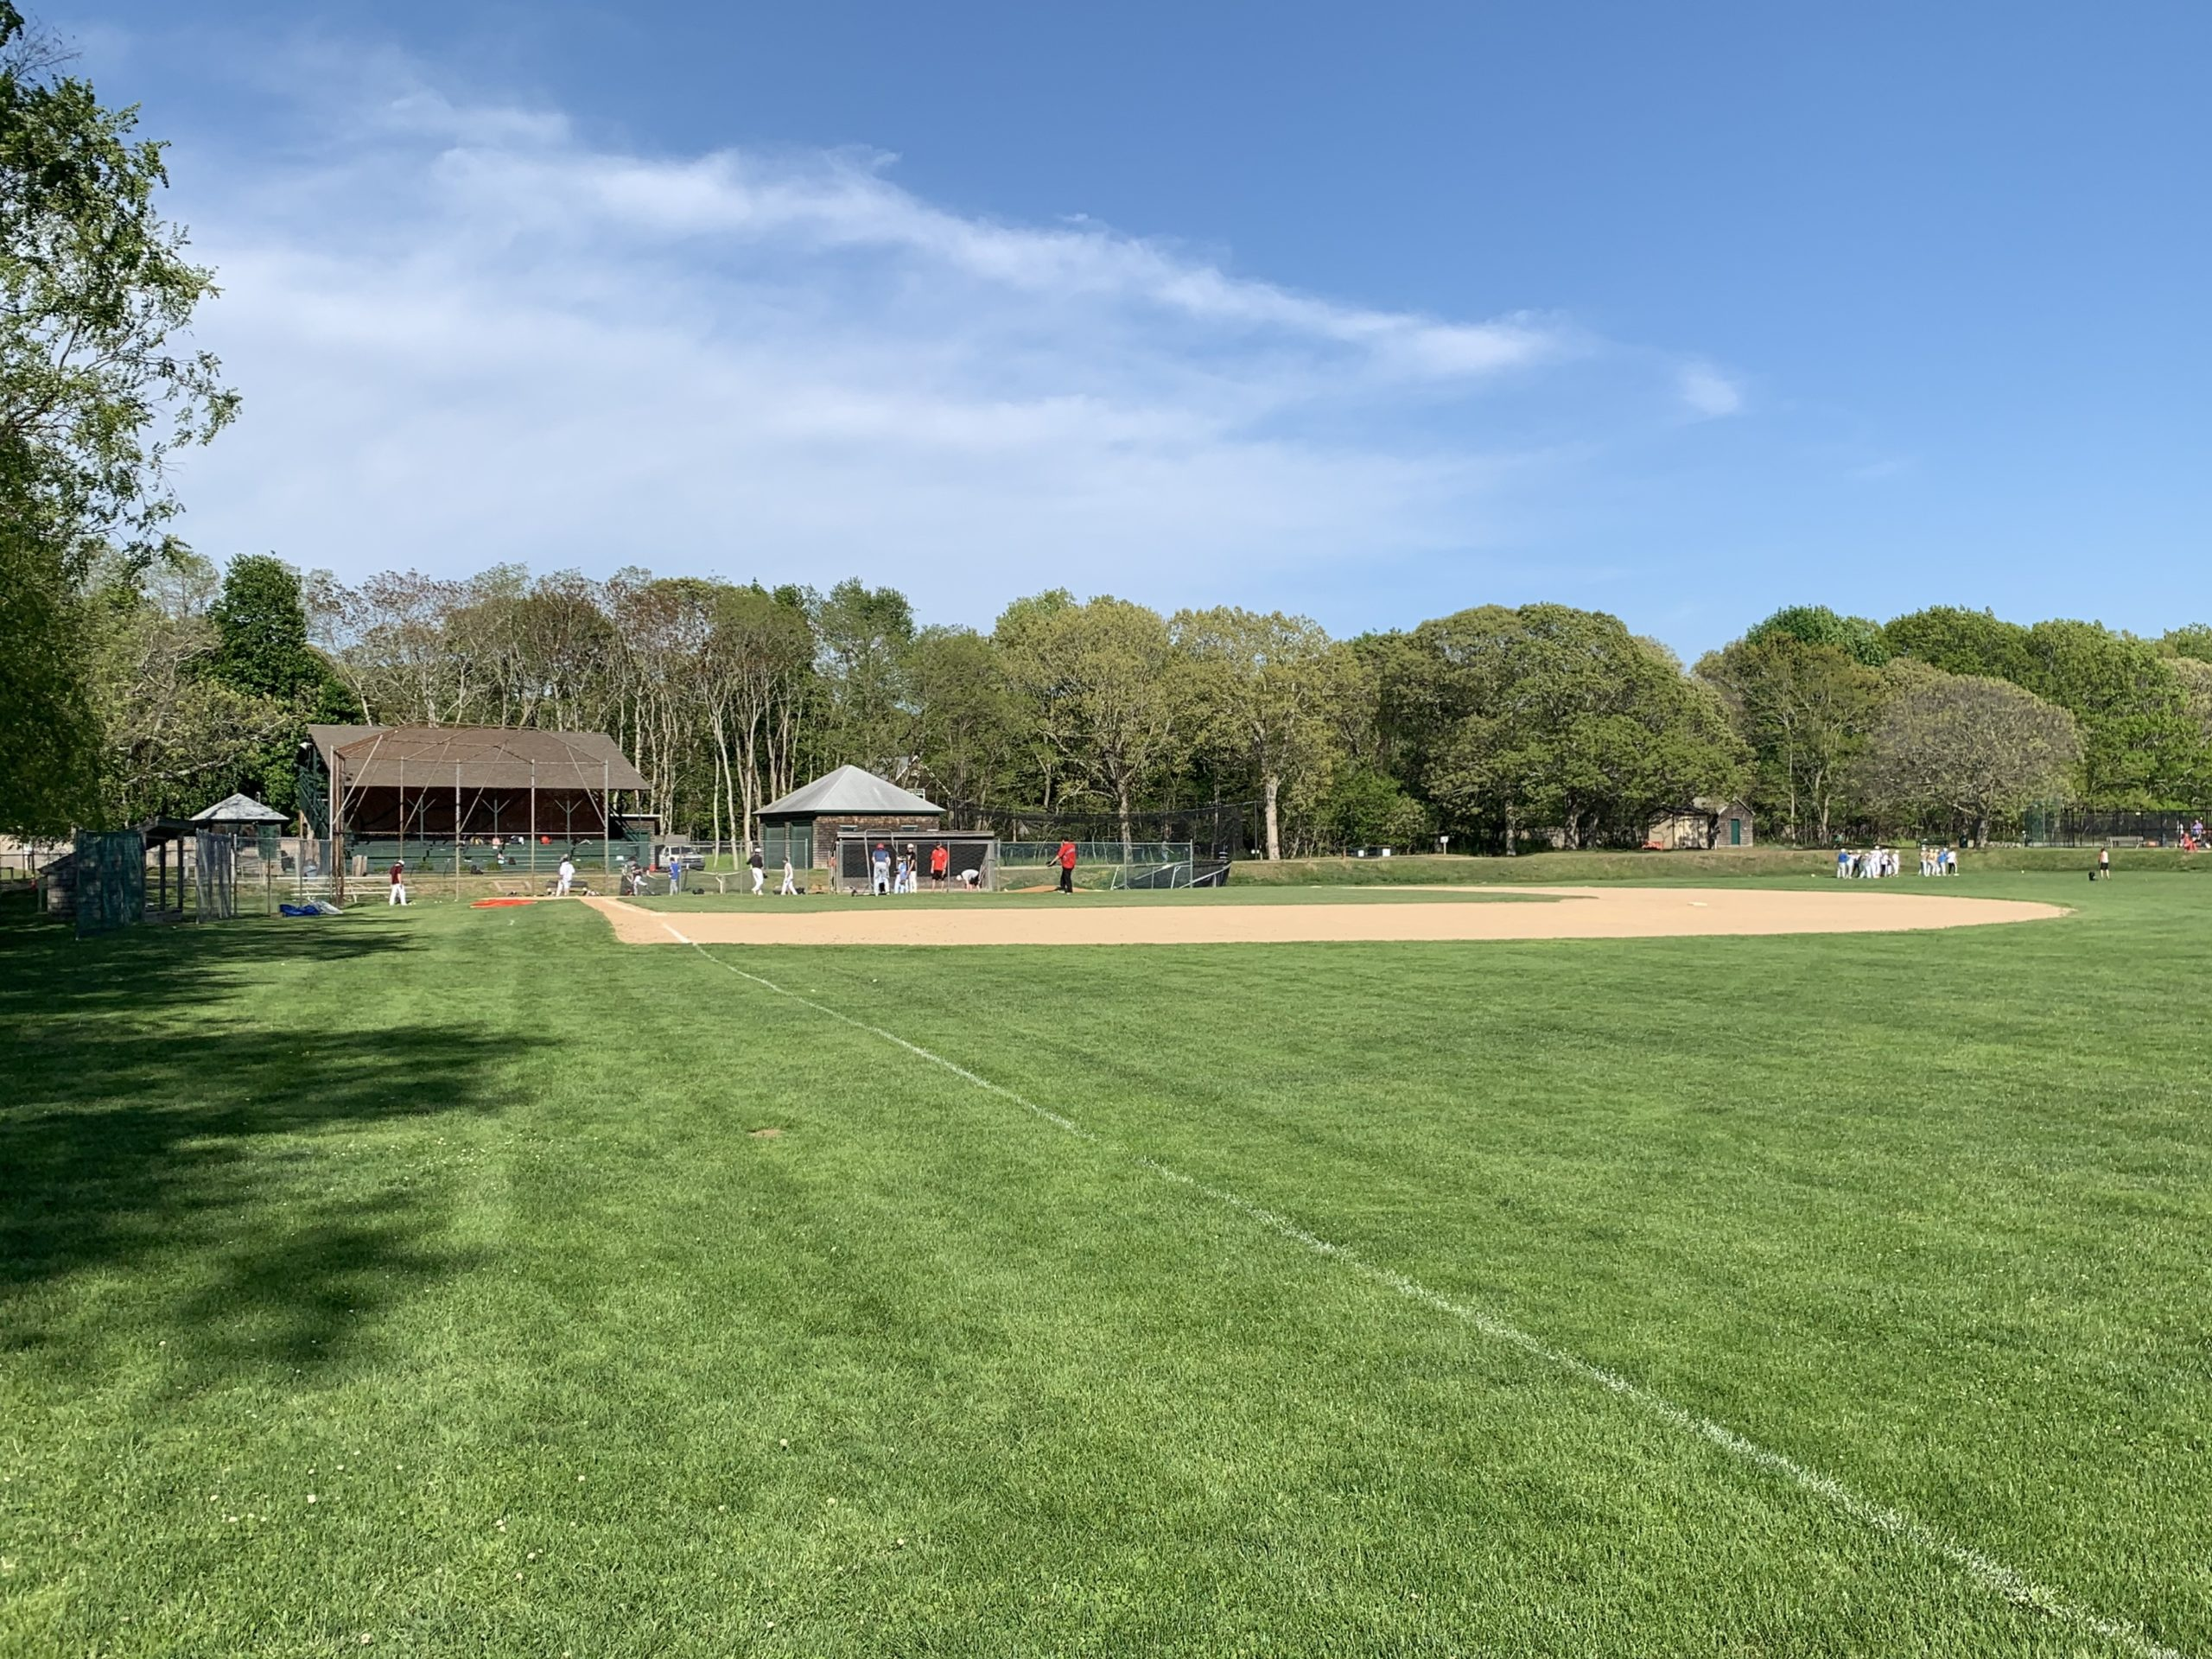 The Sag Harbor School District on Friday said it would not renew its contract with the park for the next school year.